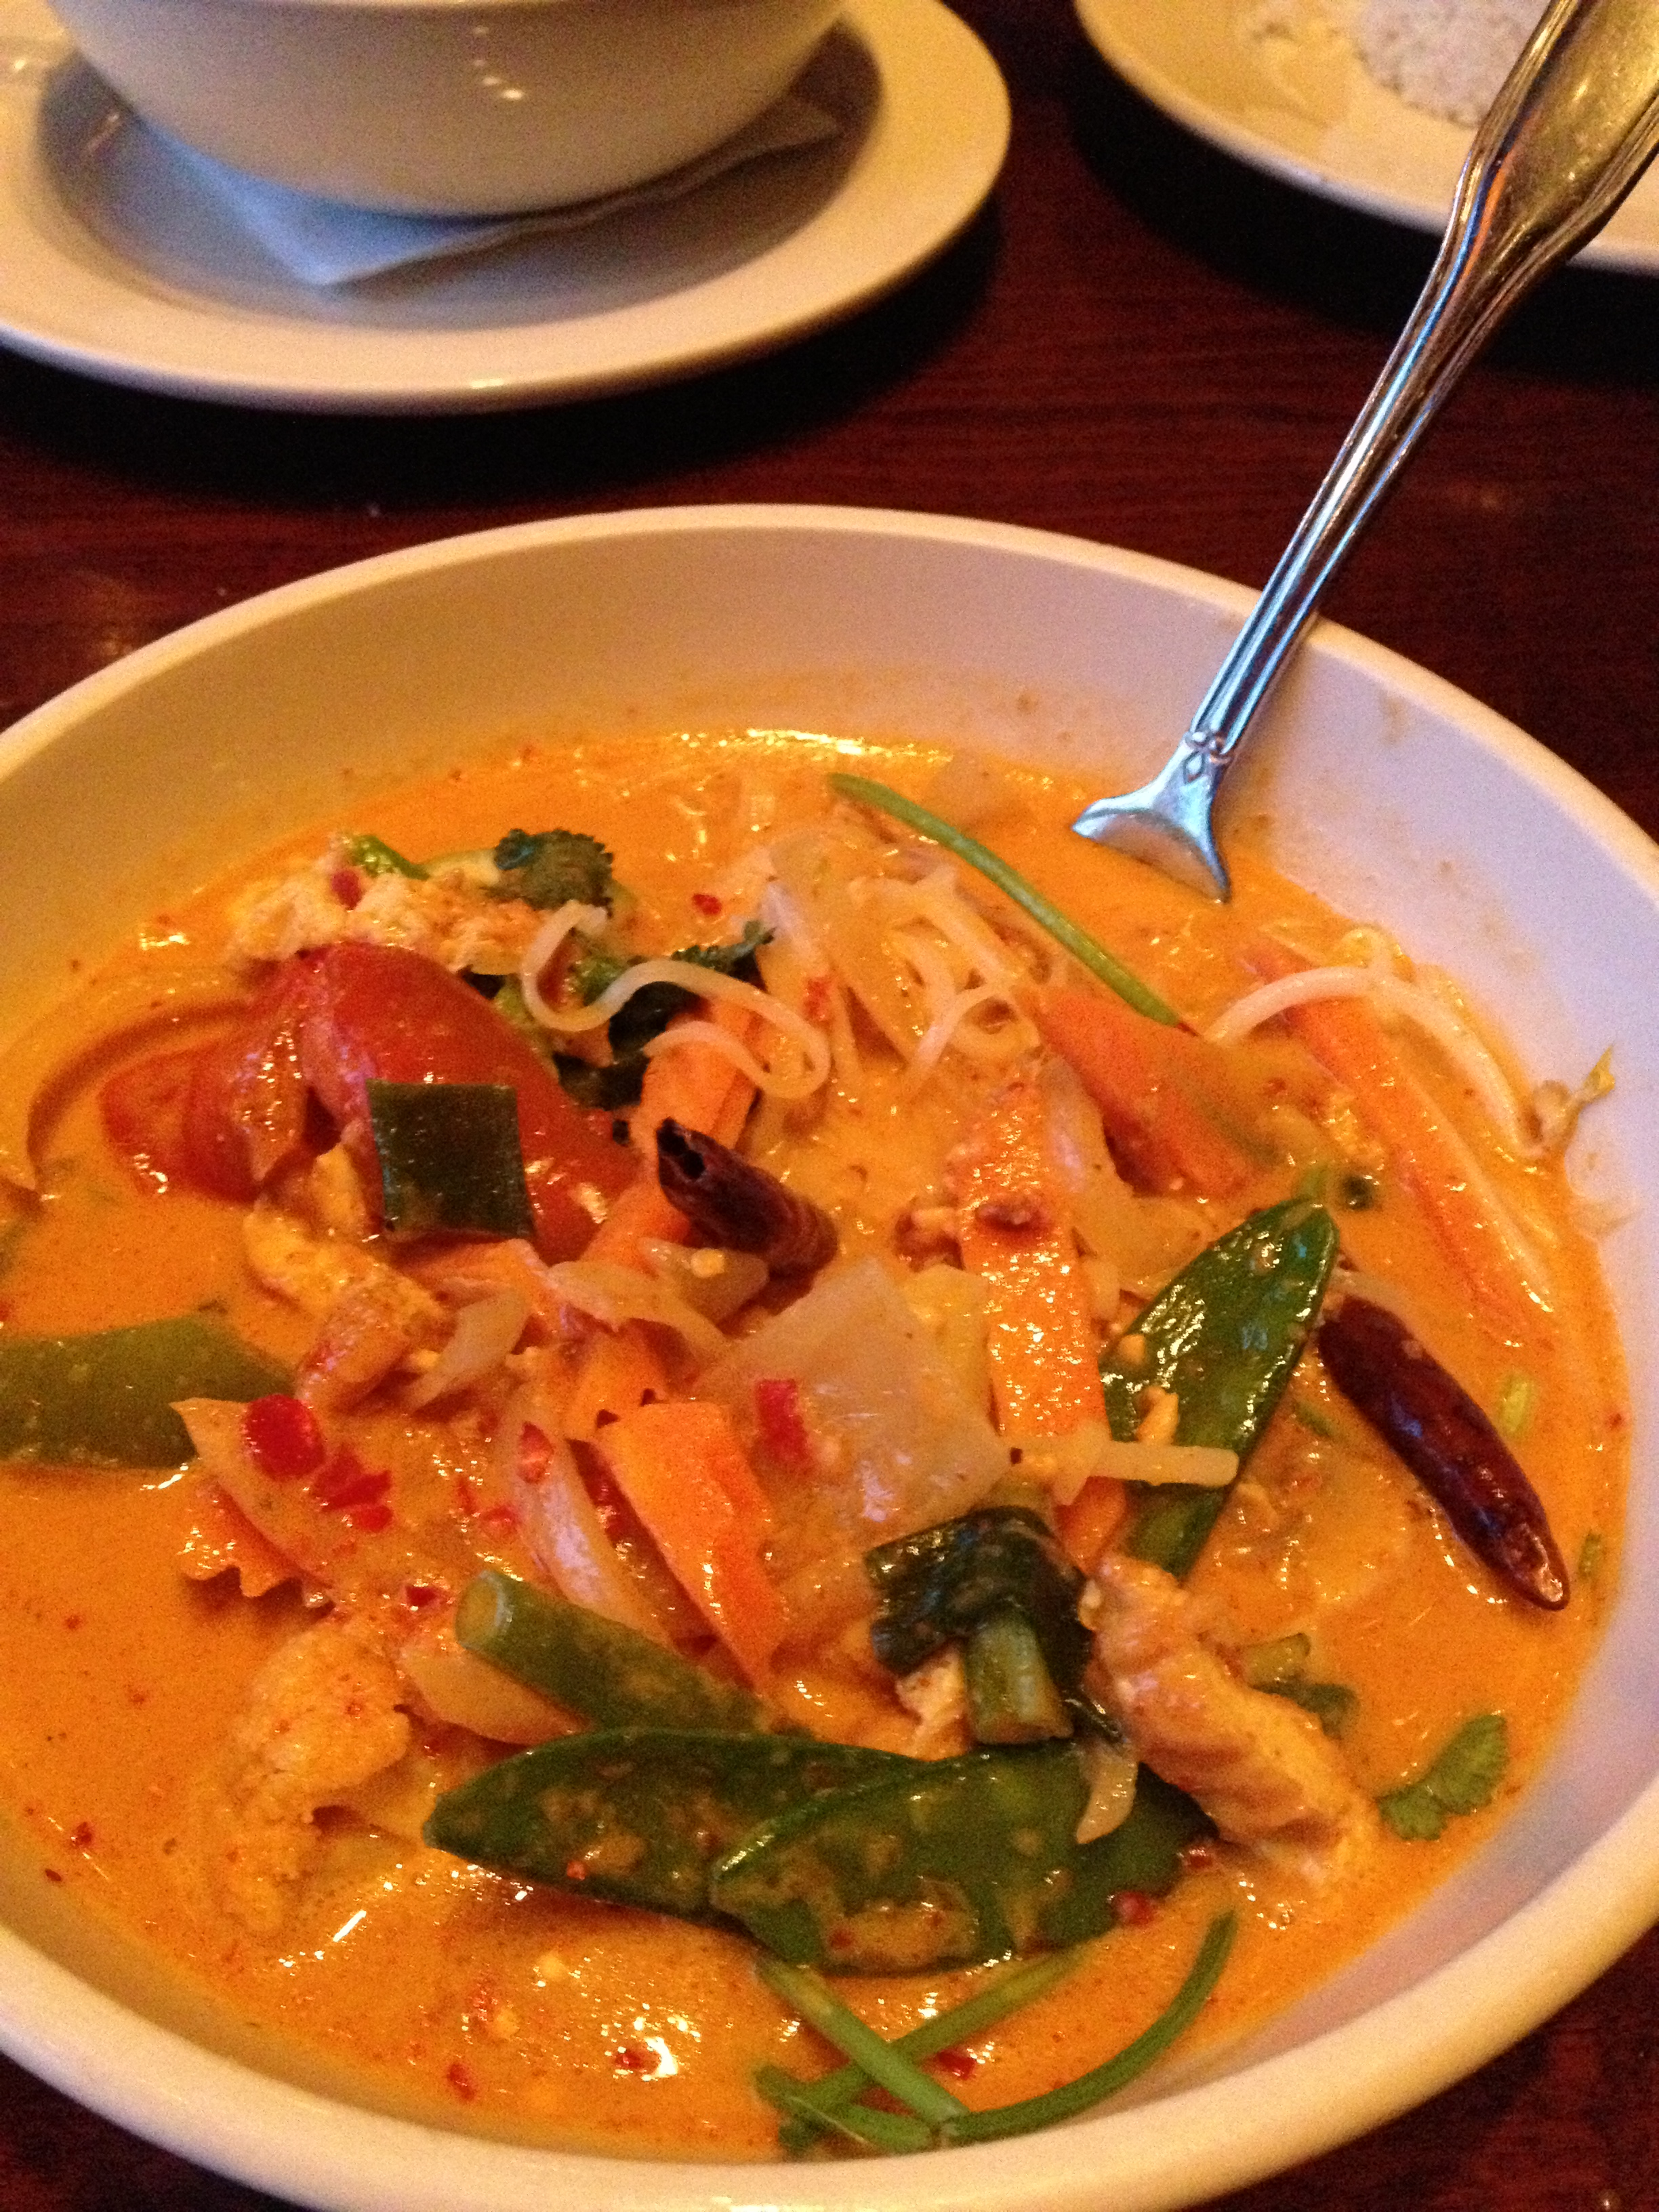 Mee Kah Teeh:  red curry sautéed with rice noodles, egg, peanuts, garlic, and bean sauce. Served with bean sprouts, fried chilies, scallions, cilantro and lime.